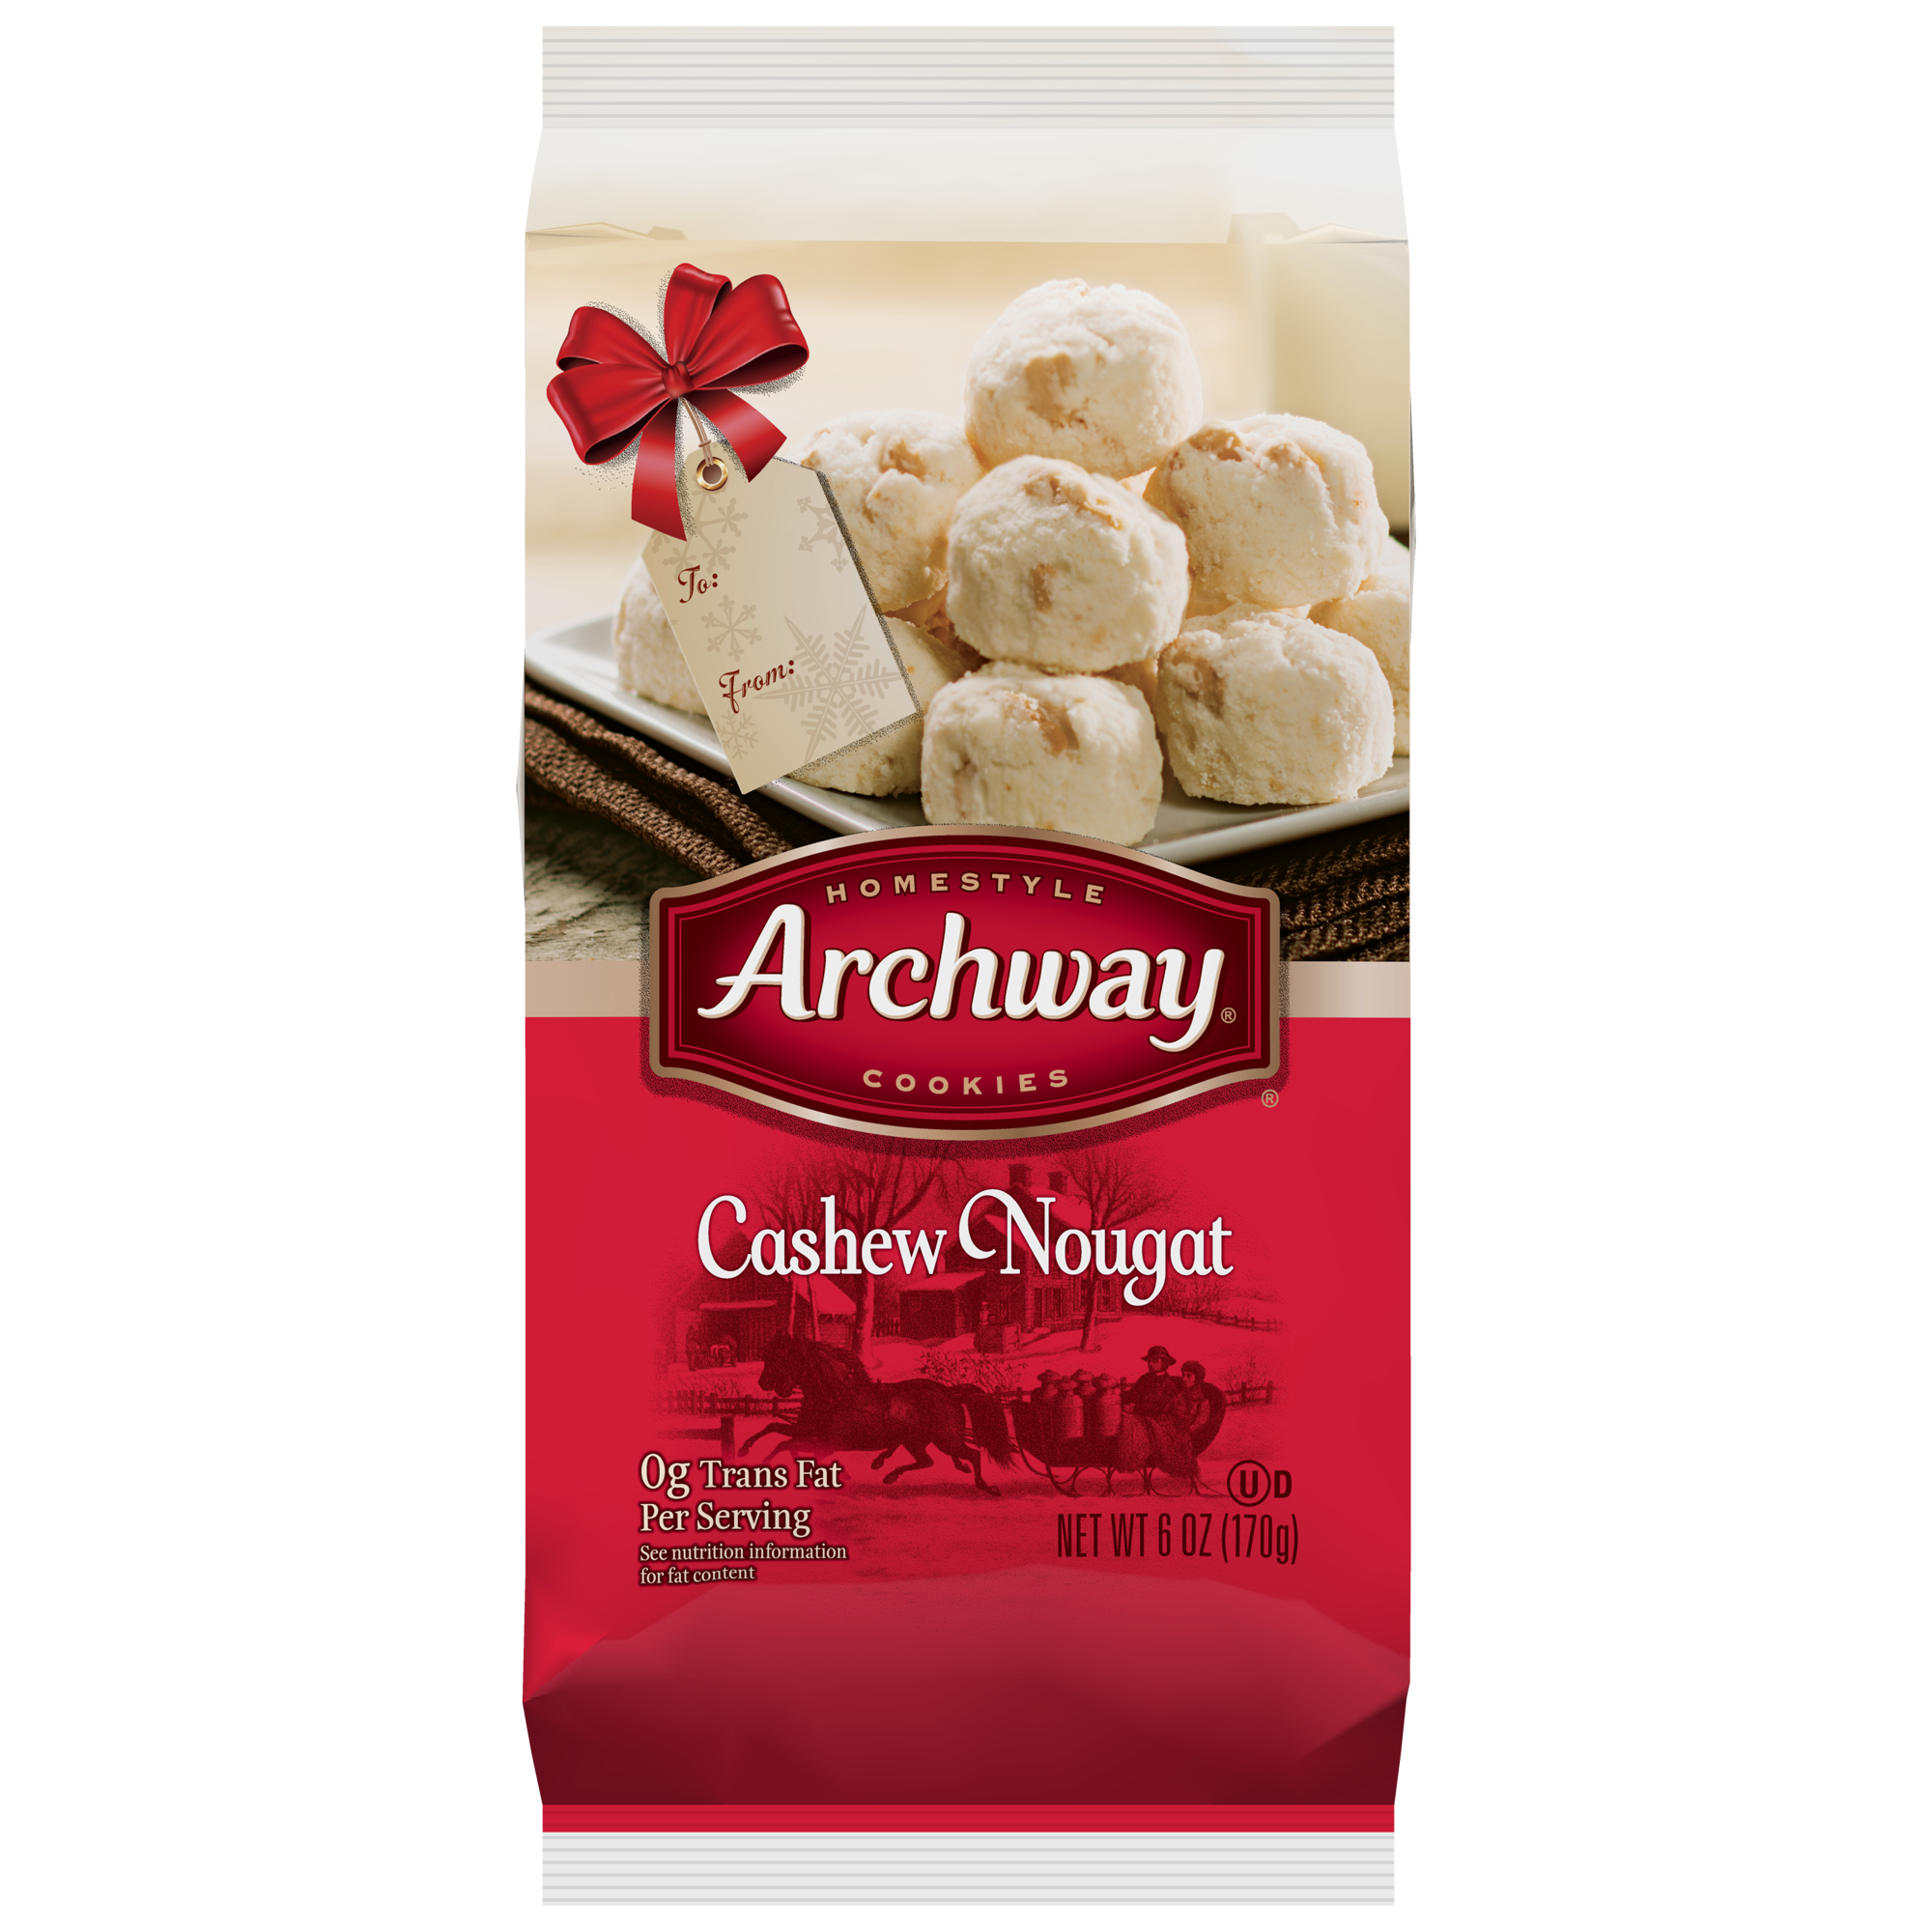 archway wedding cake cookies recipe did you buy candies and do you to hide 10815